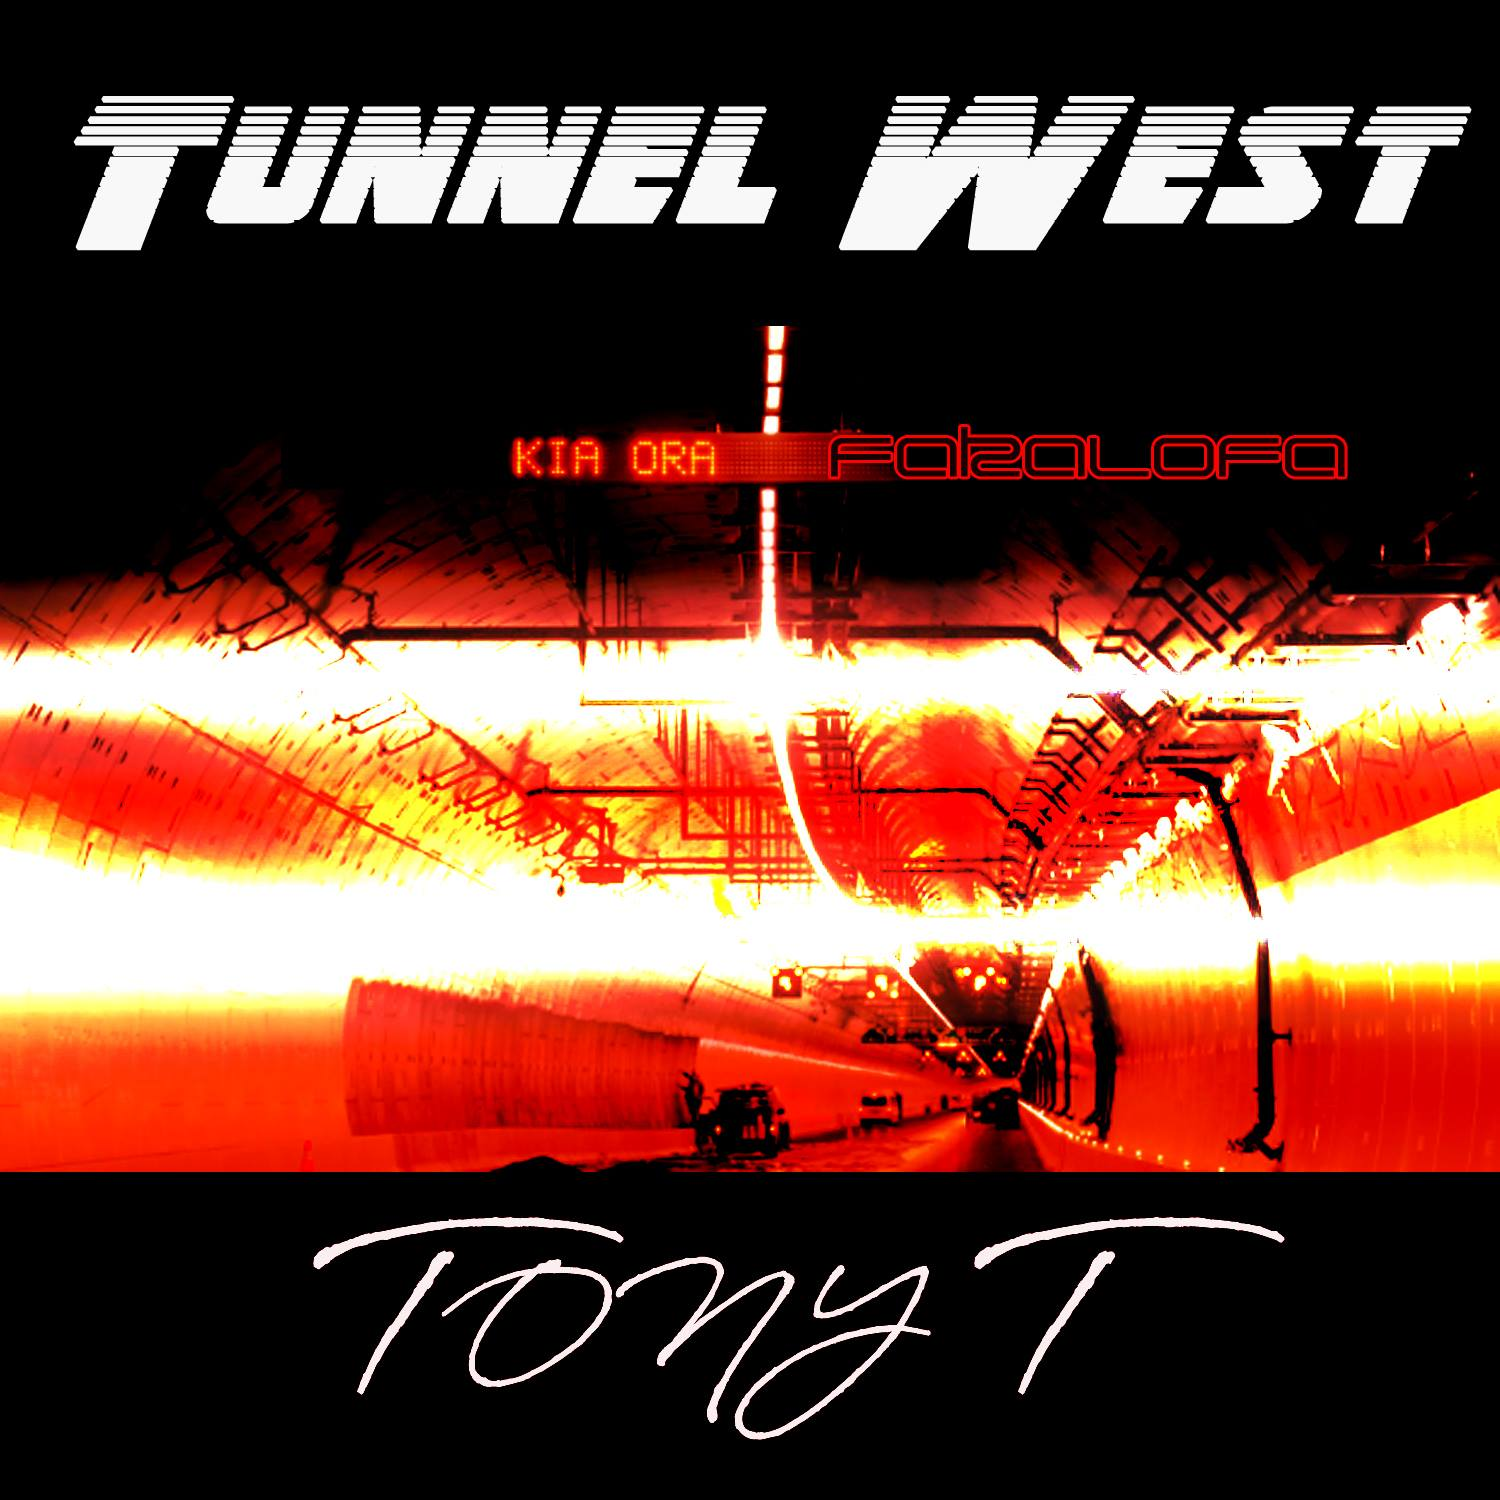 Tunnel West